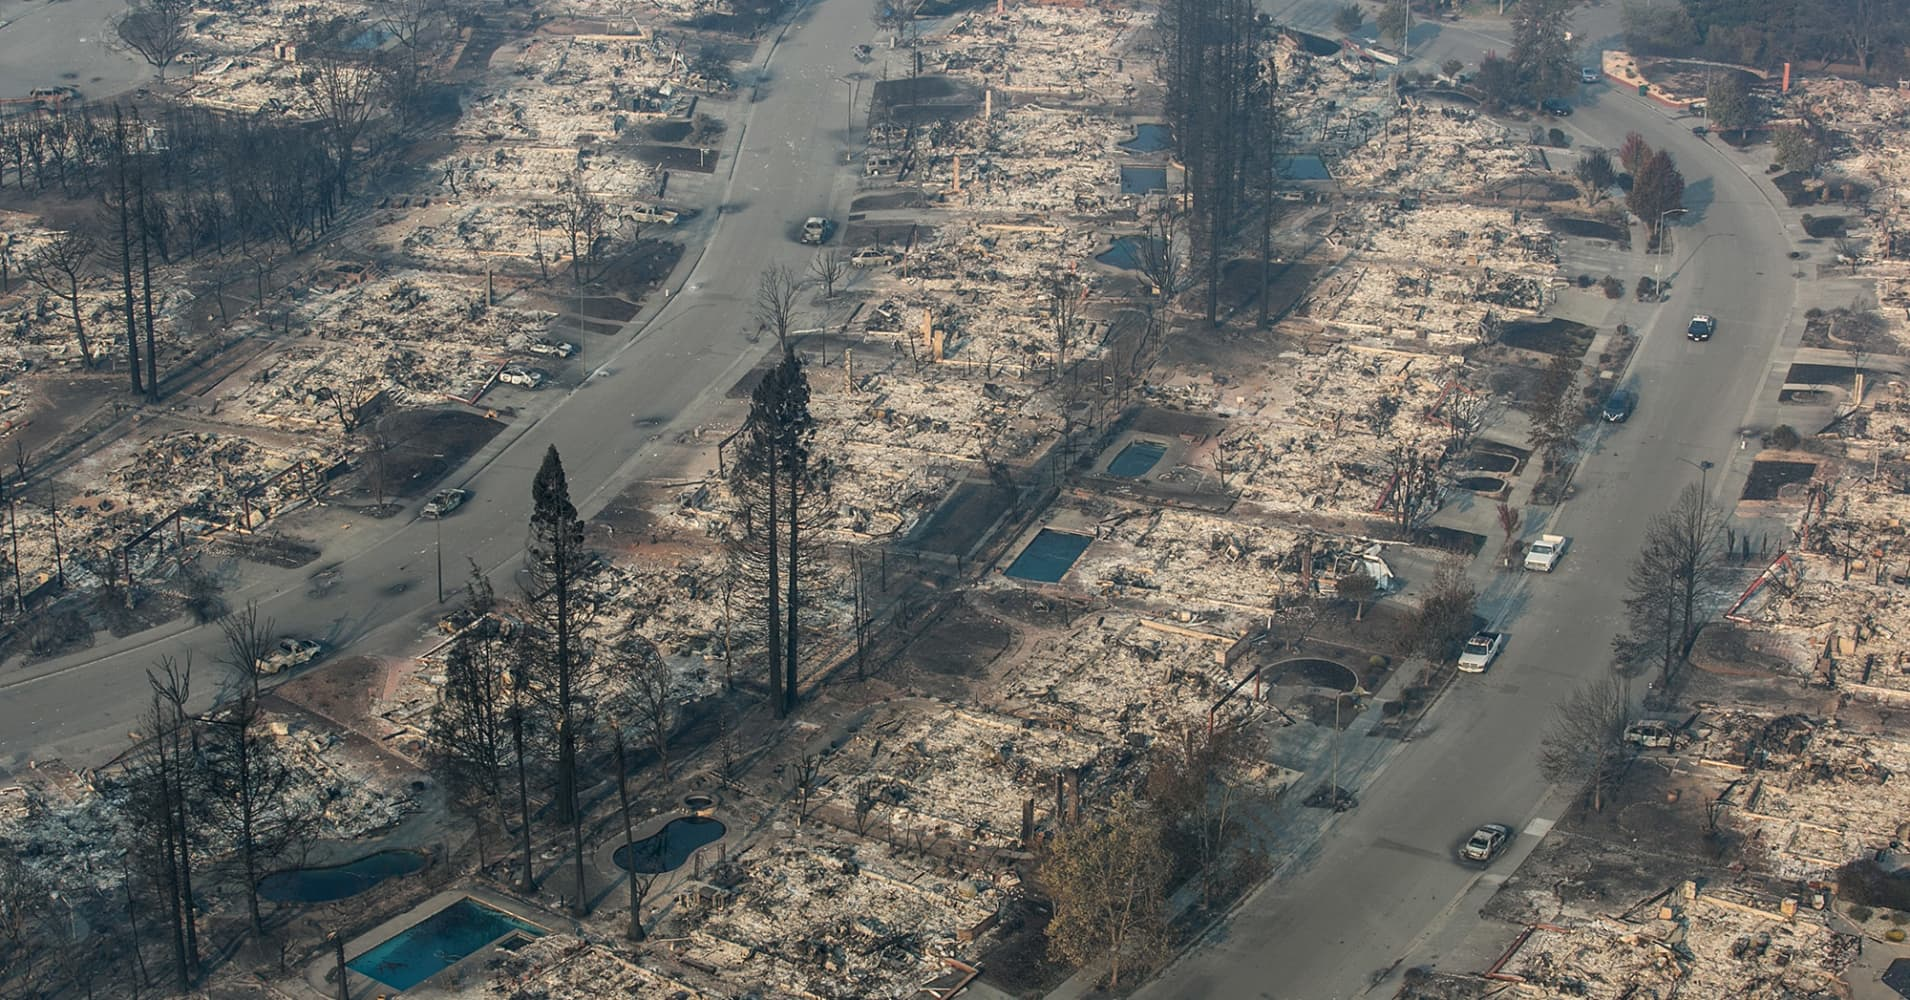 California's wine country wildfires near containment even as structure loss grows